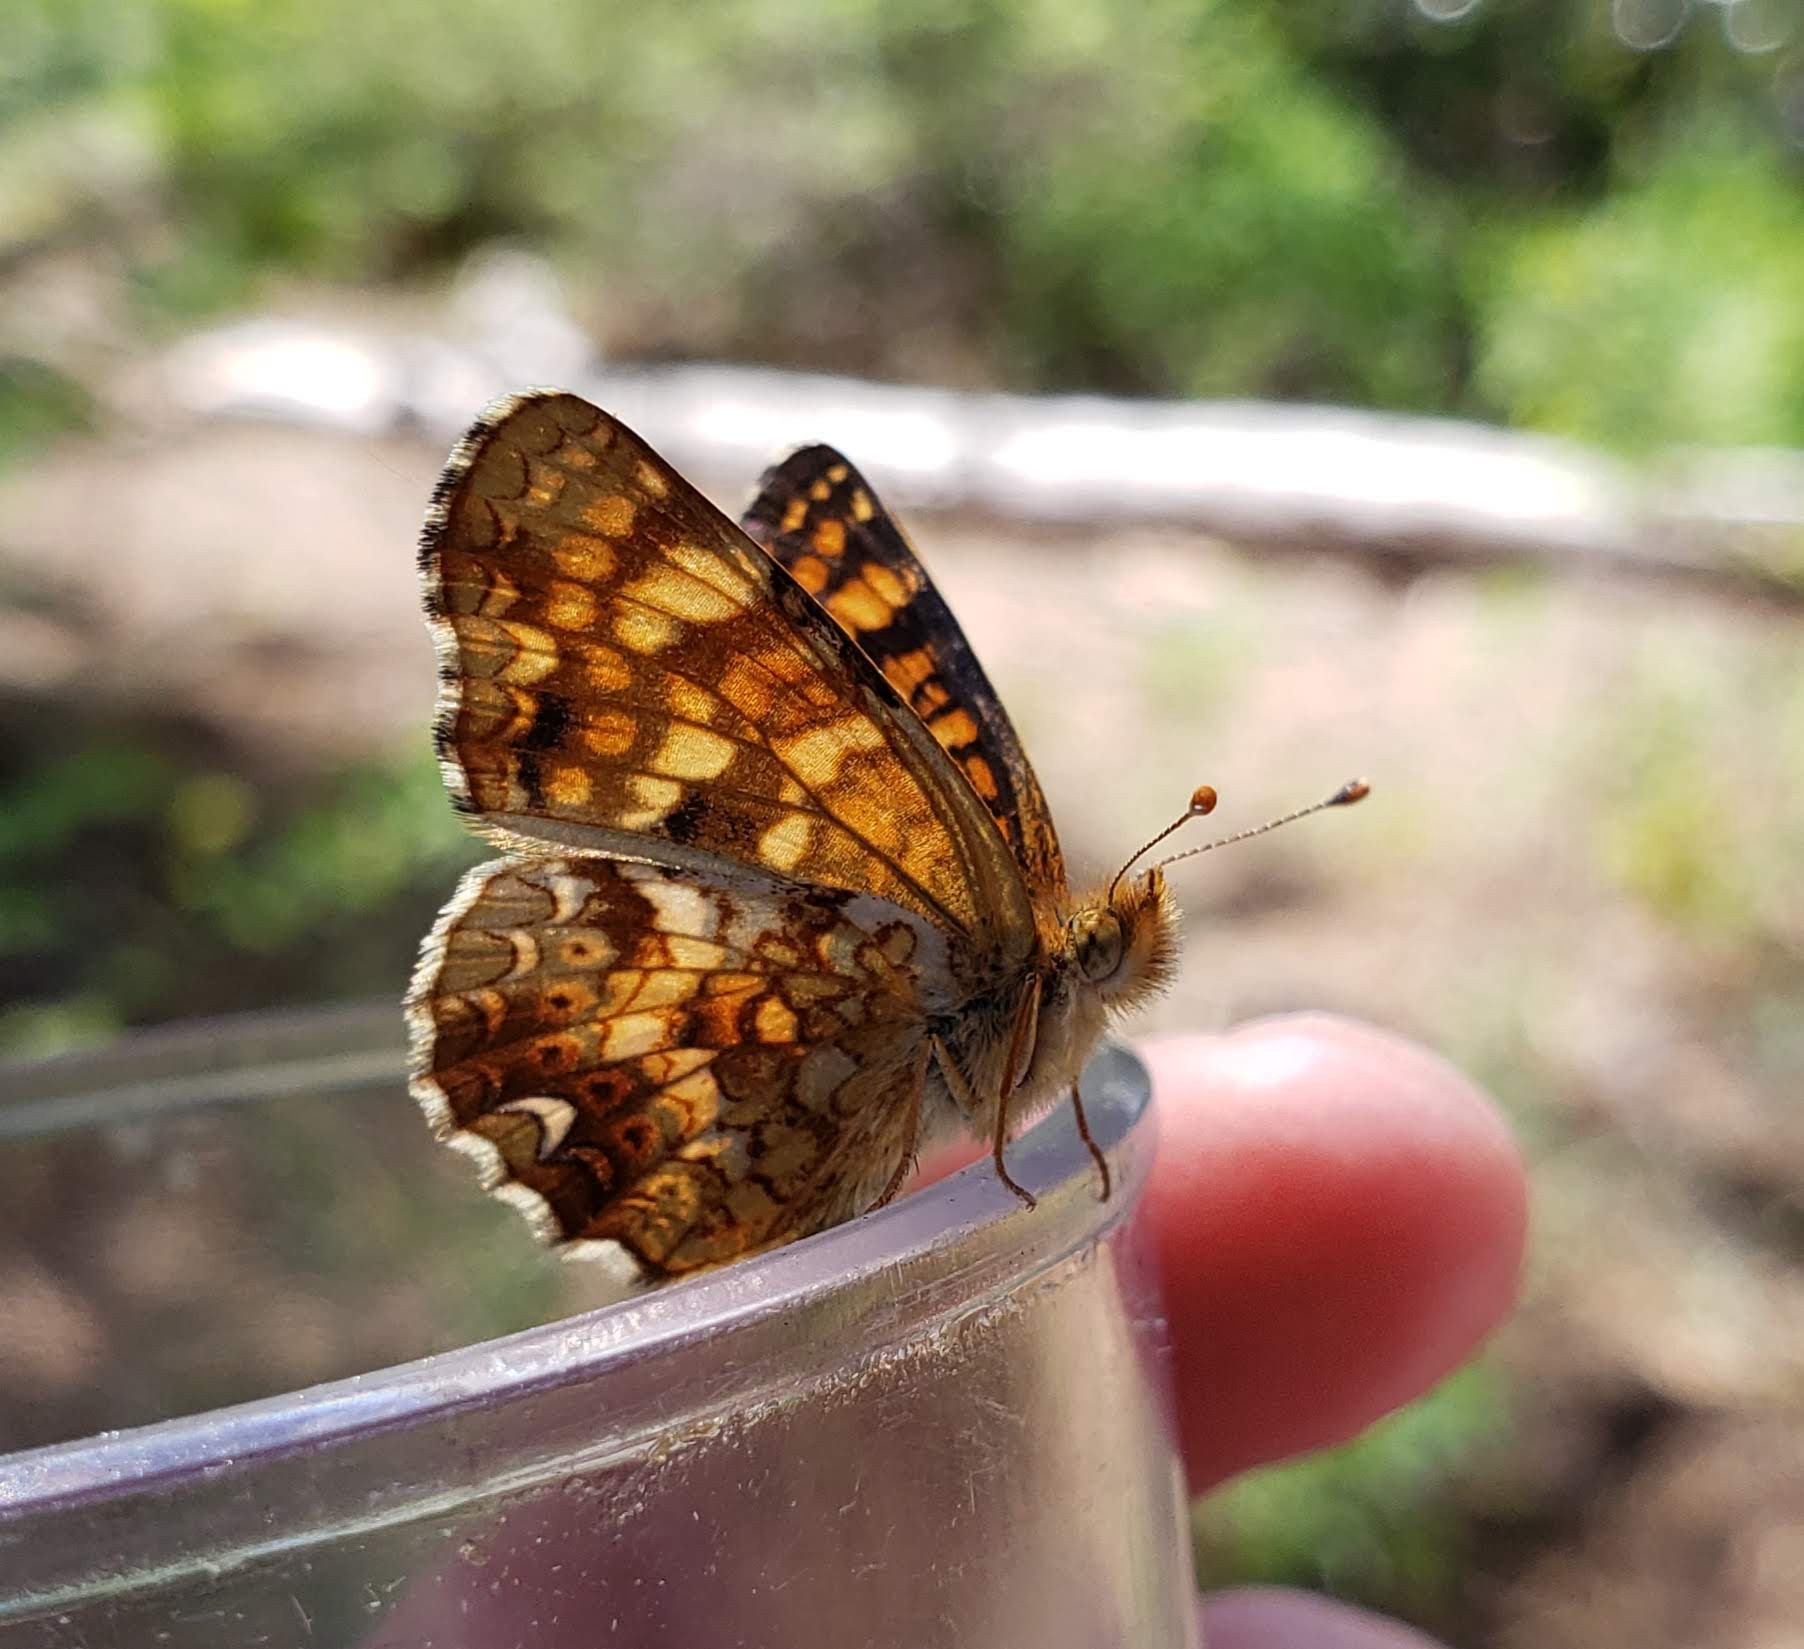 black and orange butterfly on edge of open jar